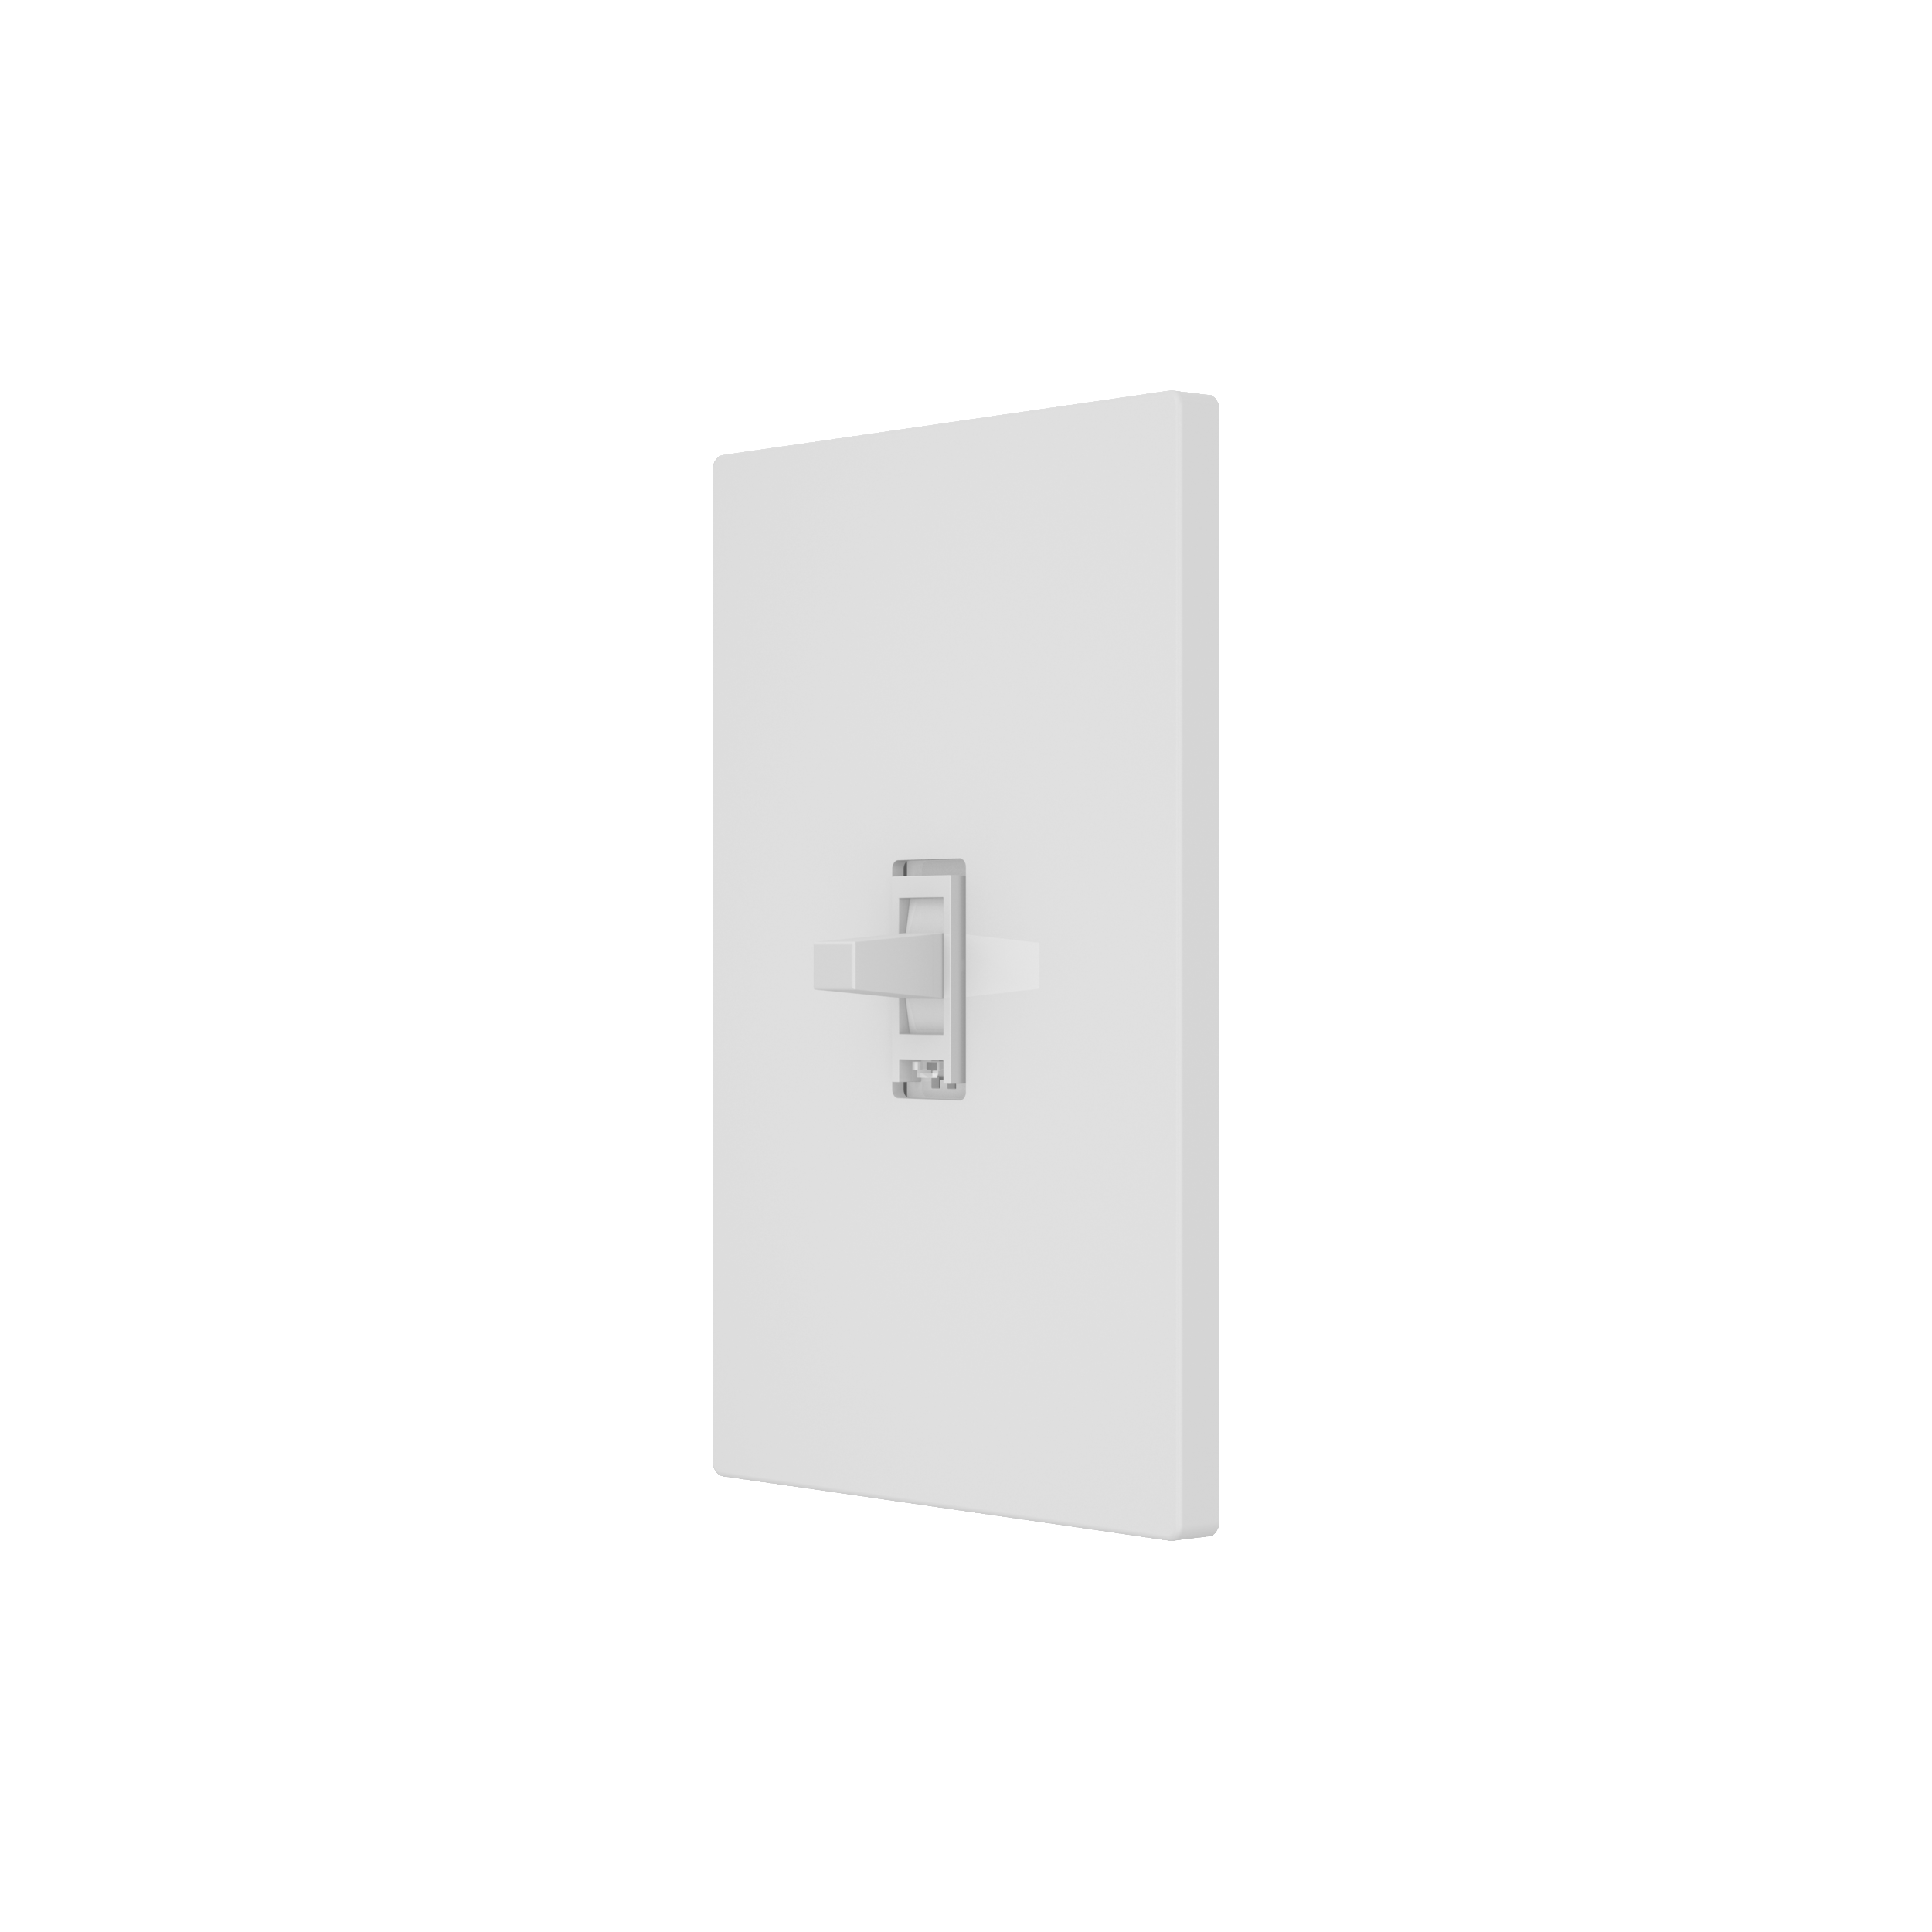 Toggle Switch 02.png